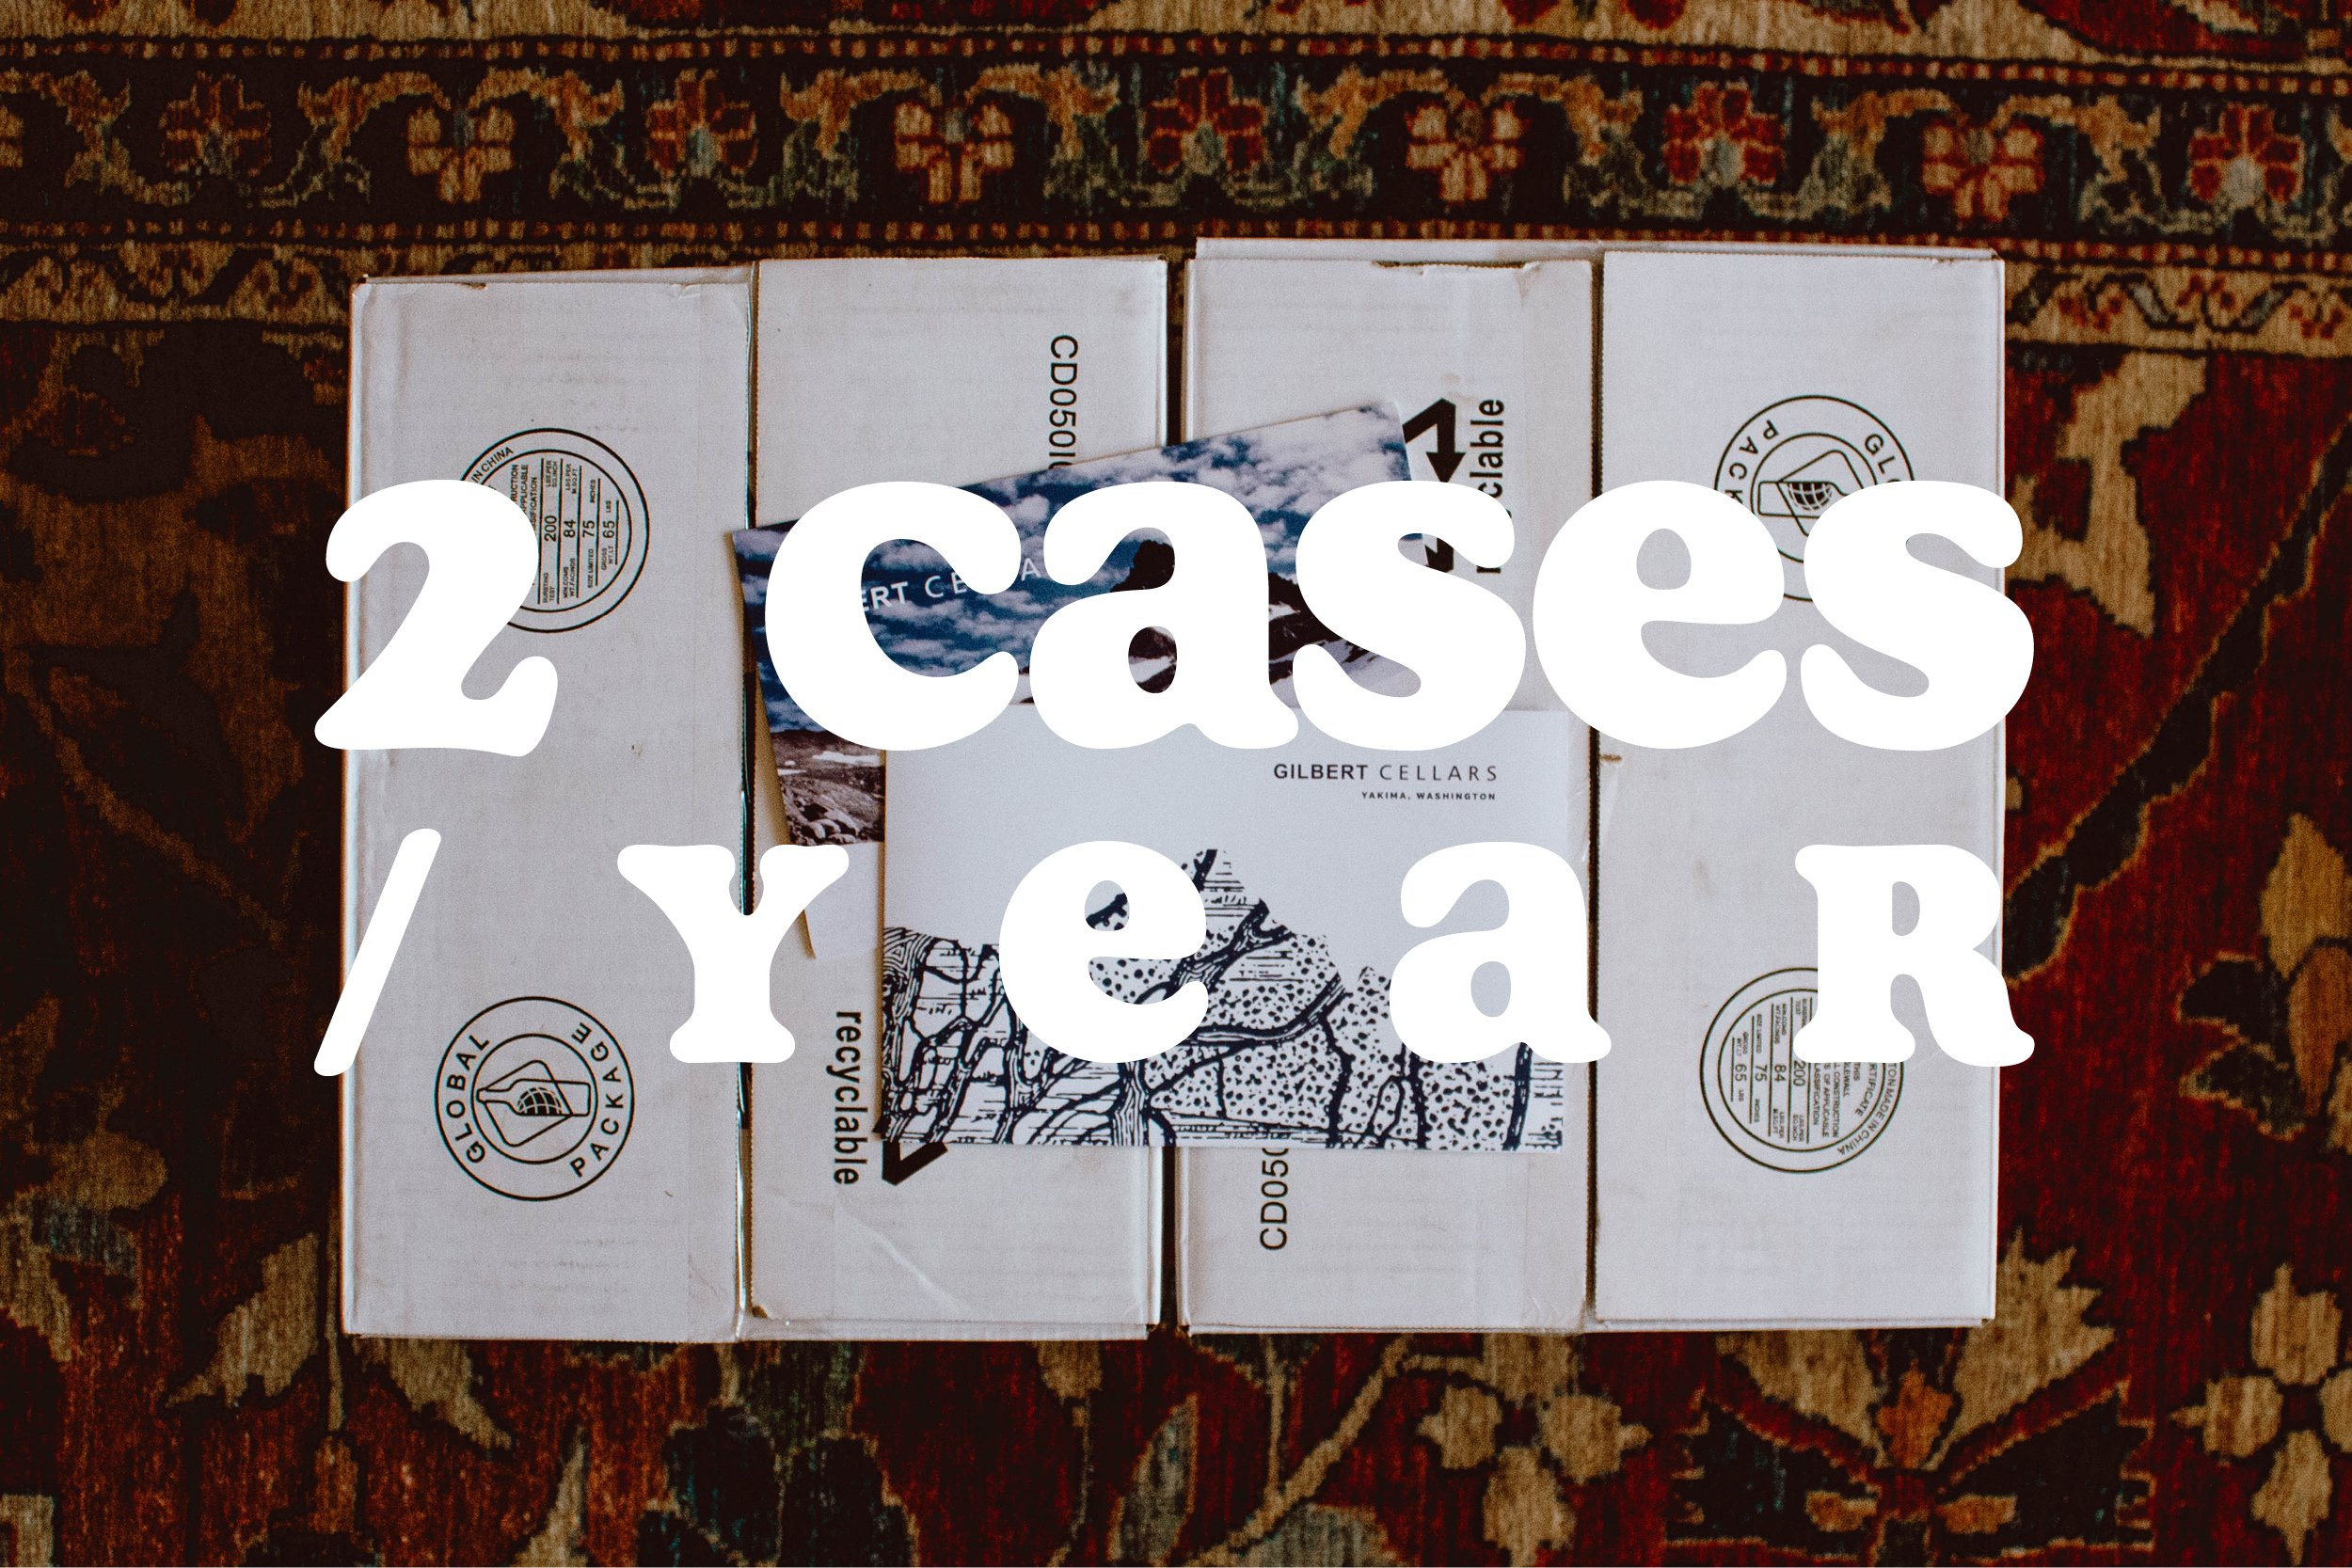 Two cases per year.